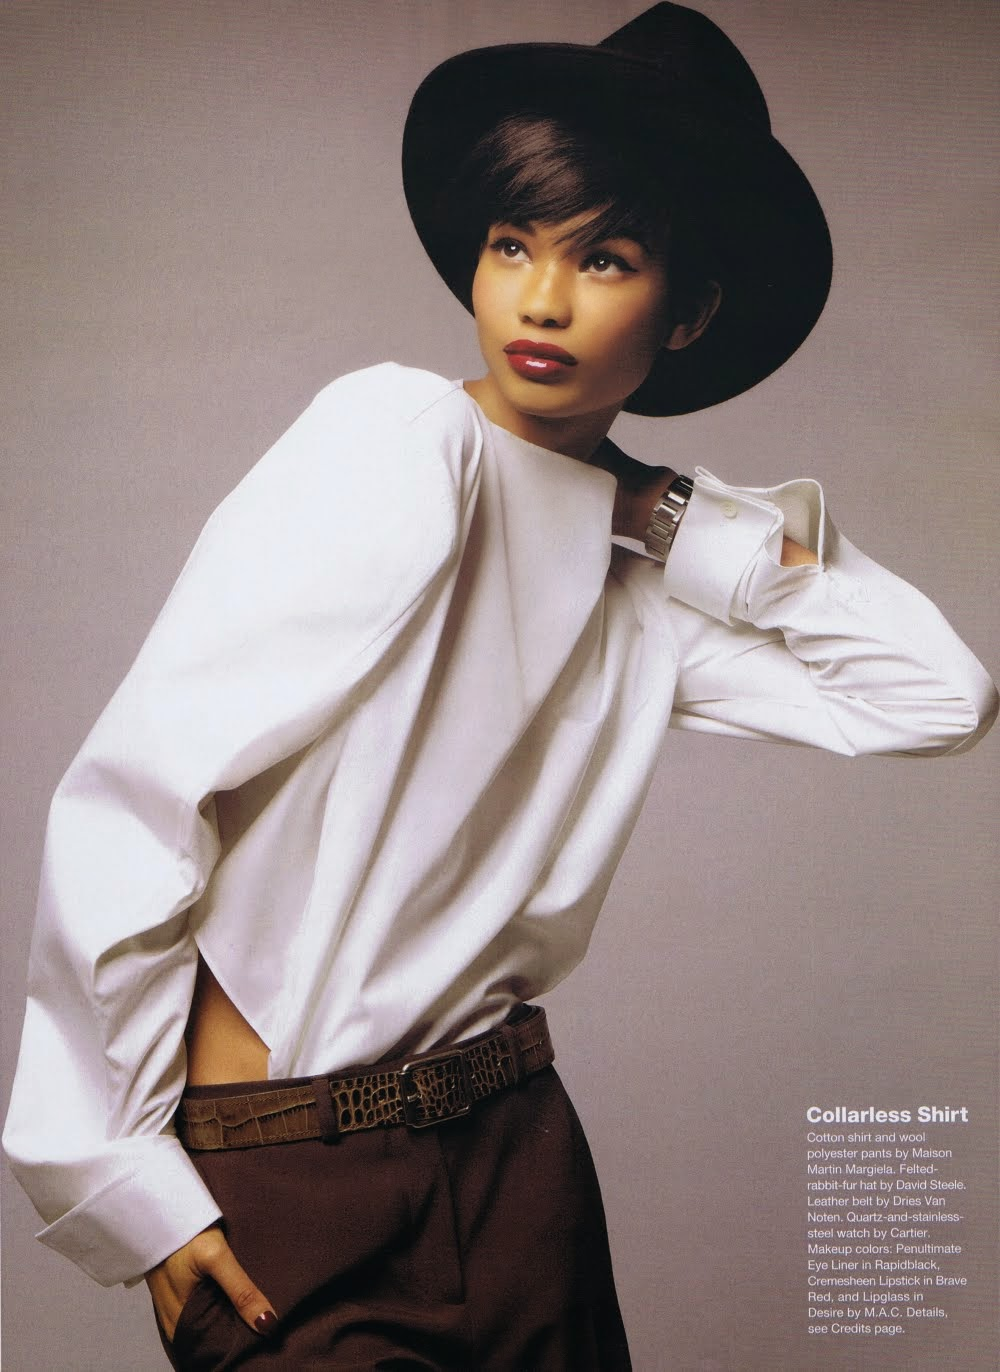 Chanel Iman by Thomas Schenk for Allure September 2010 | Ses Rêveries